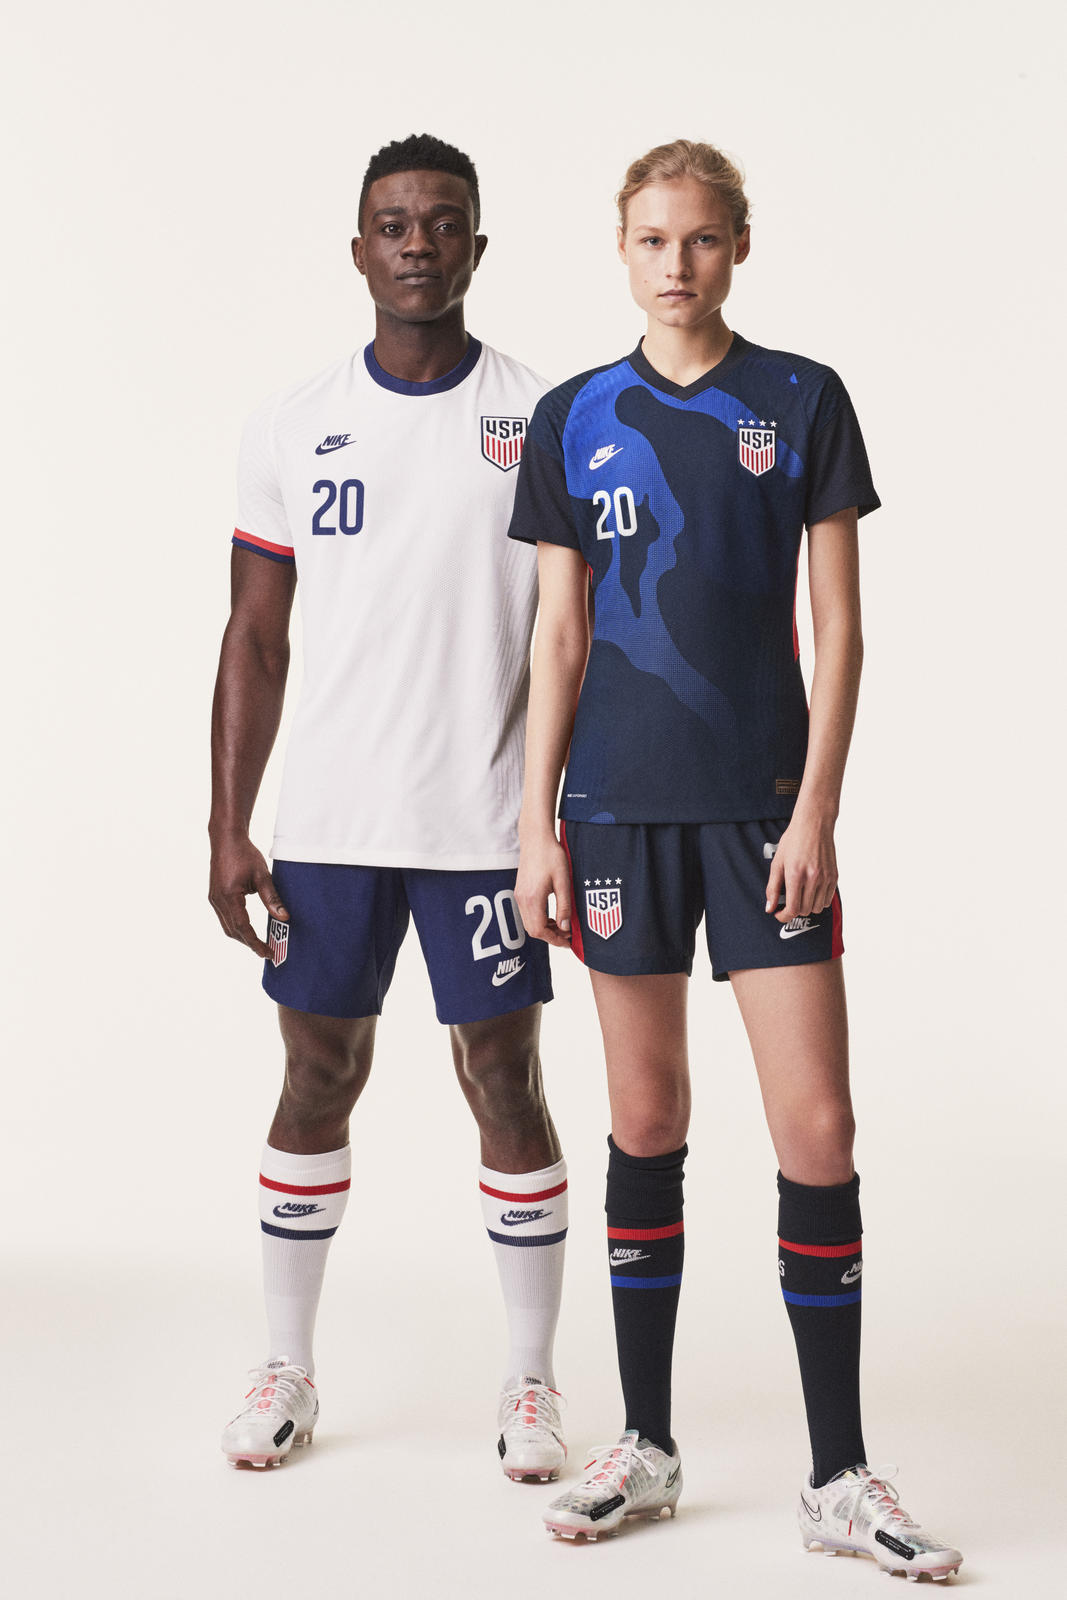 Nike Football 2020 Kits: Nigeria, Korea, USA 0